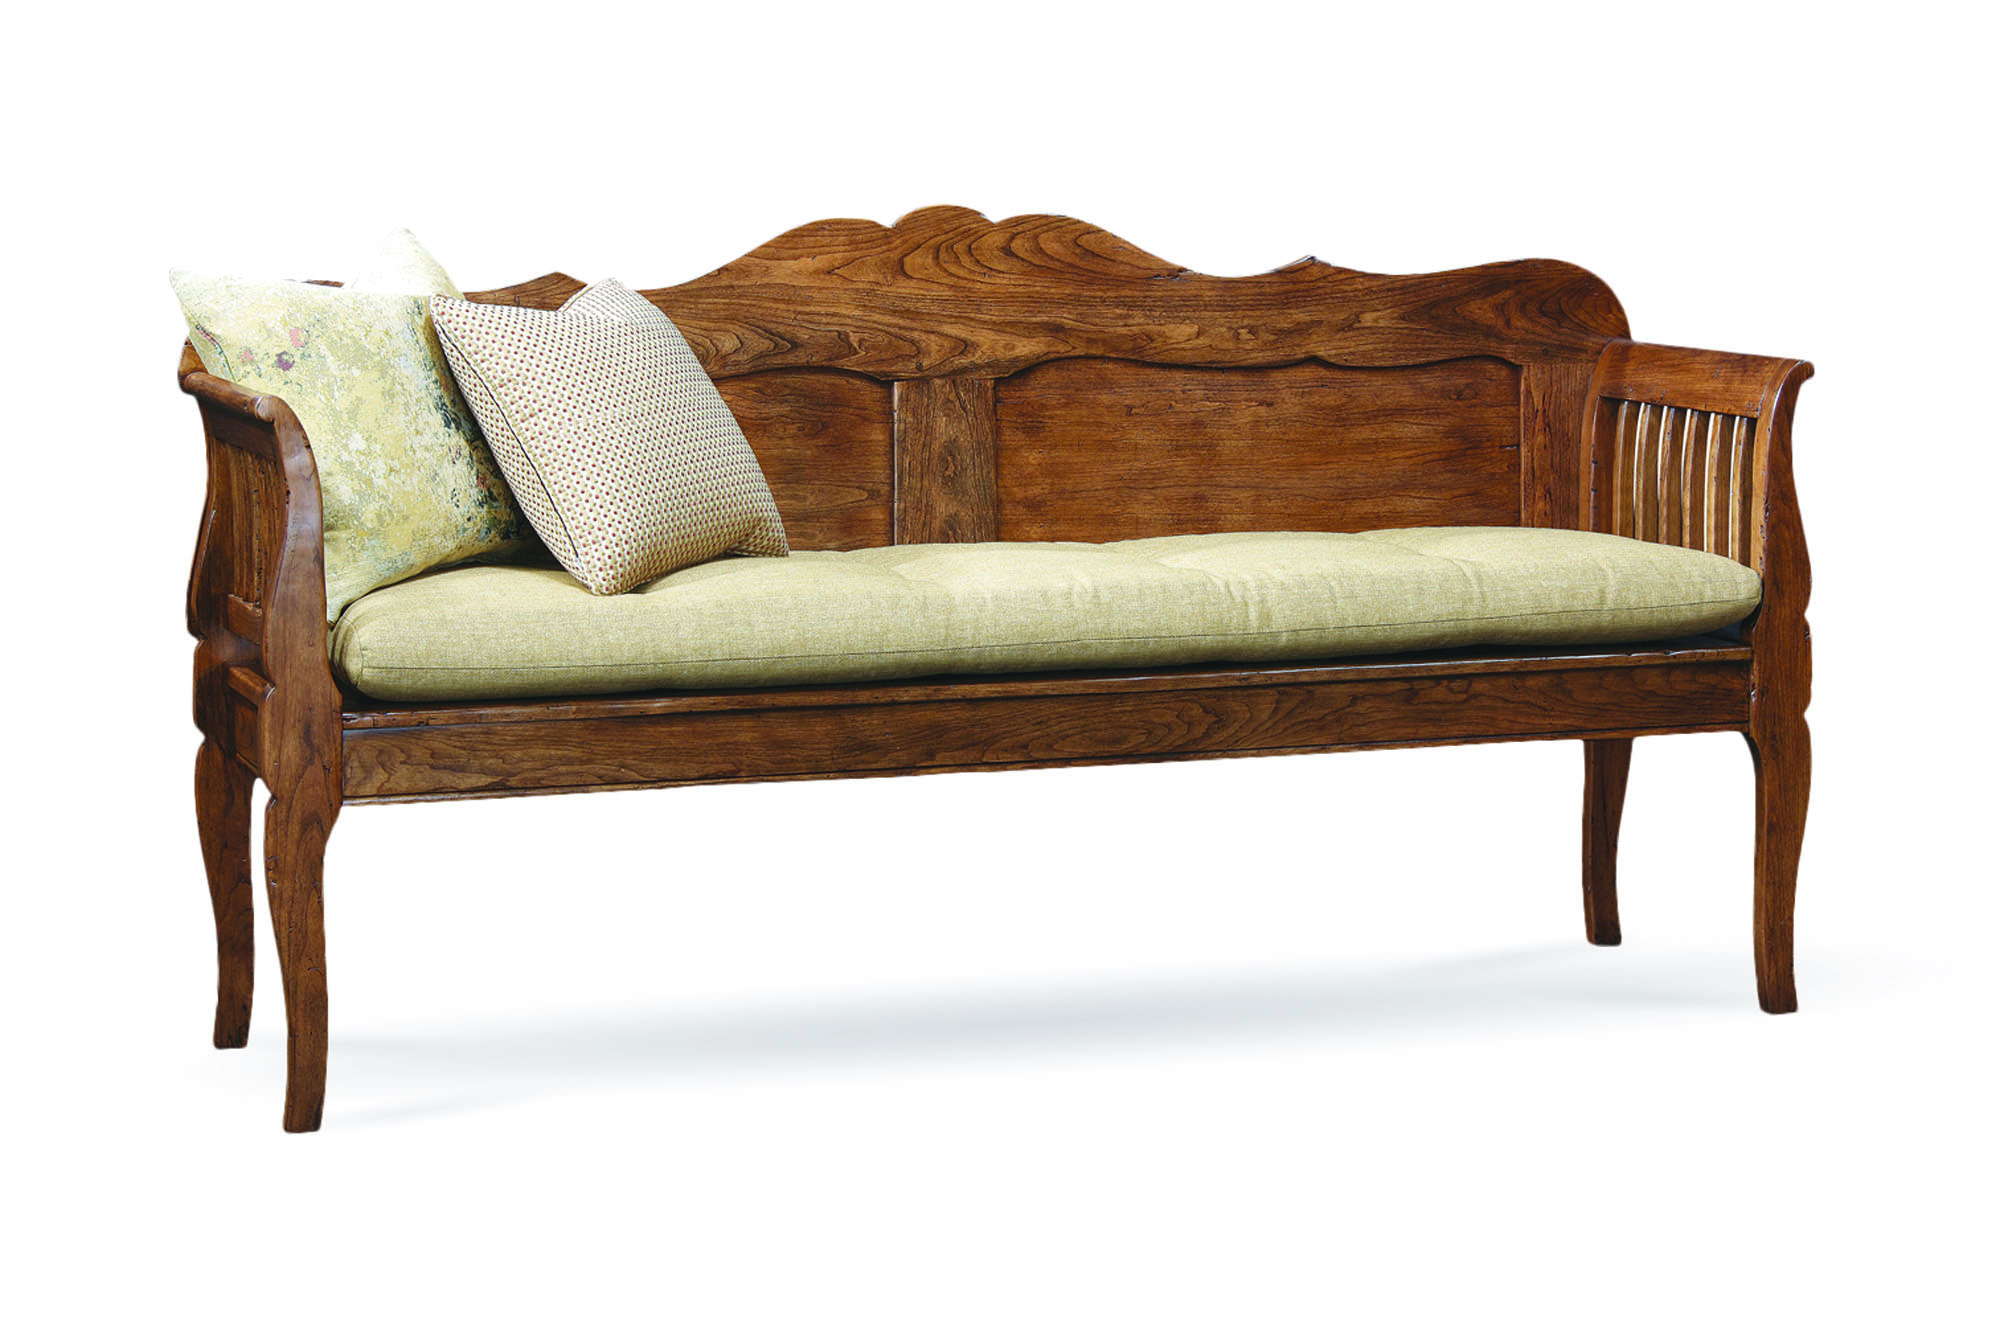 'Marcellus' bench from Stickley's Finger Lakes Collection